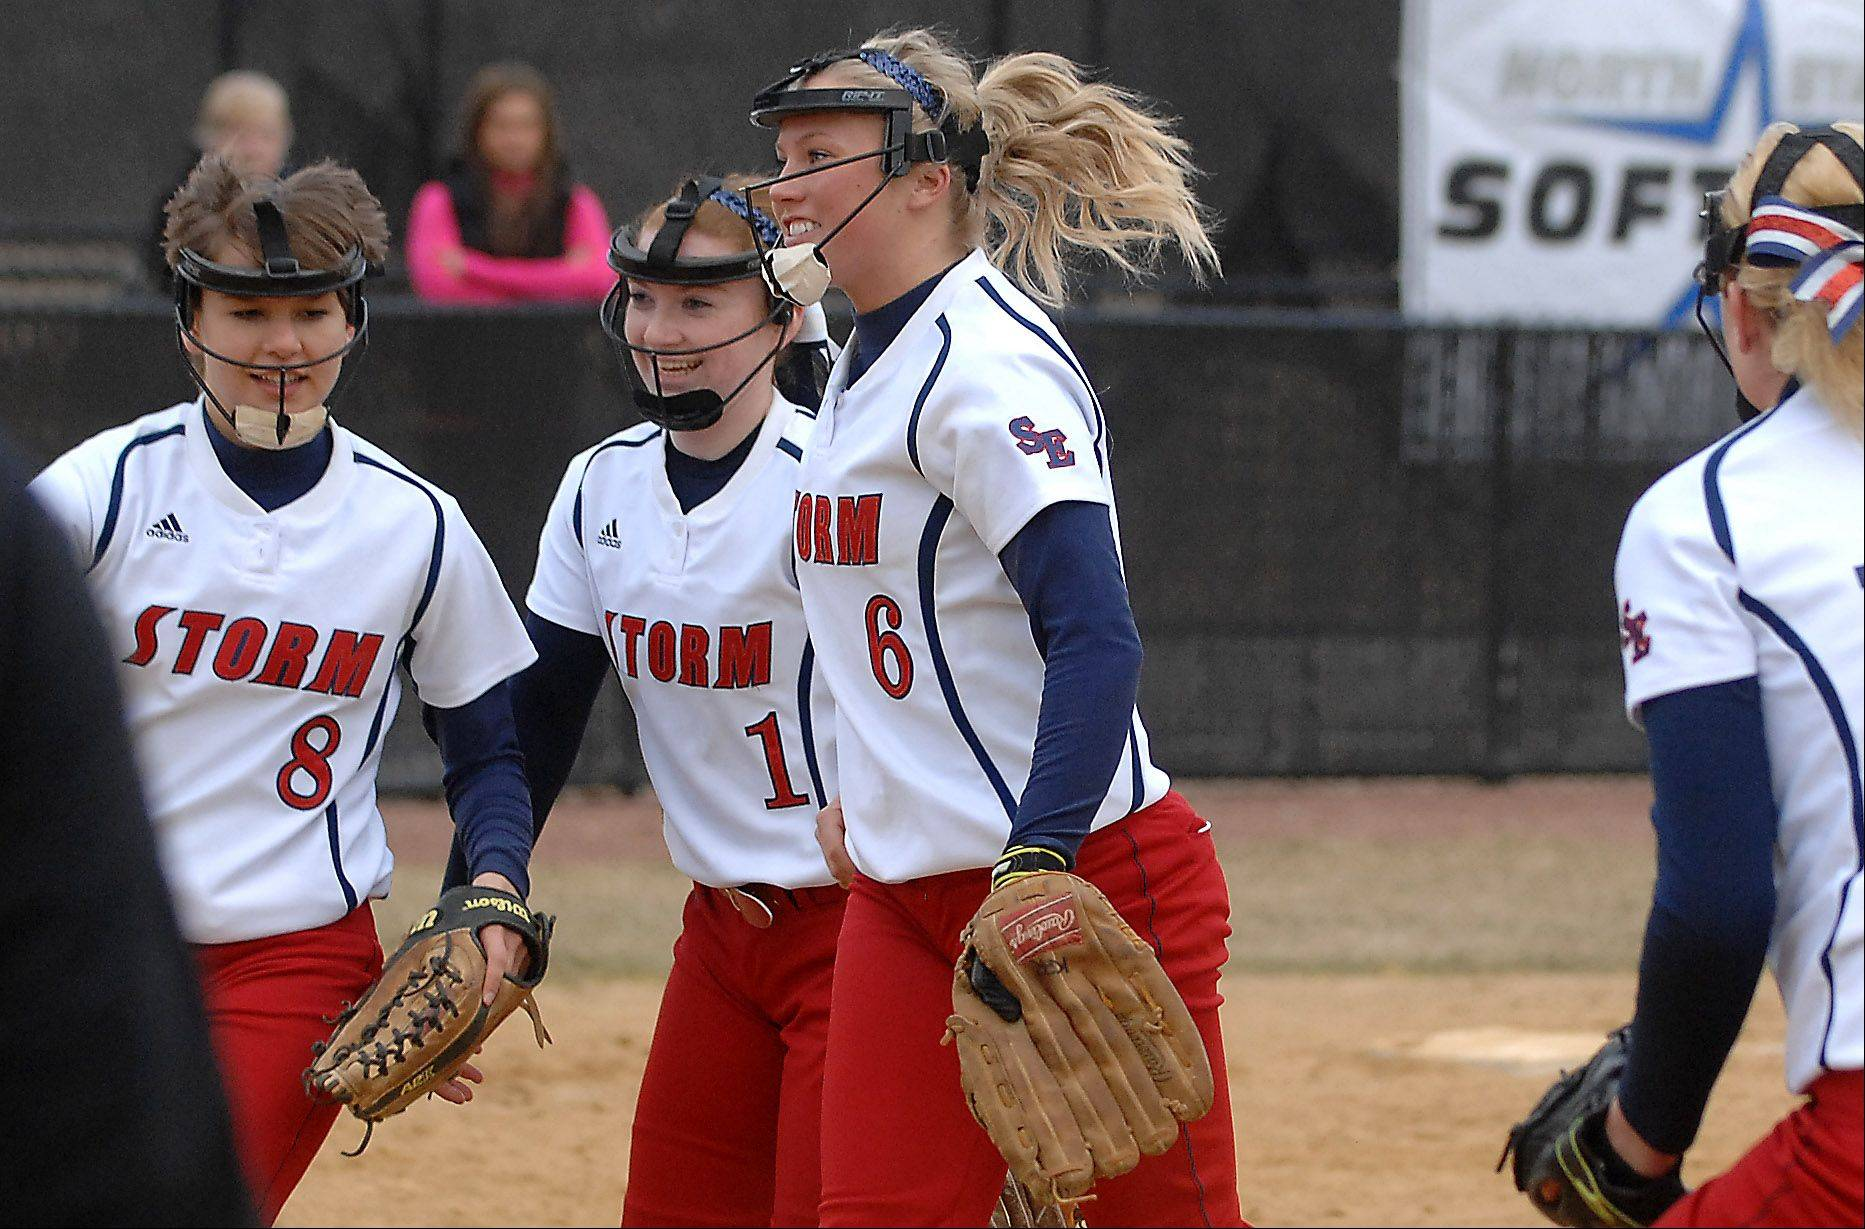 South Elgin�s Victoria Watt (8), Paige Allen (1) and Kara Rodriguez (6) are all smiles after the Storm recorded the final out to beat St. Charles North during Friday�s game in St. Charles.